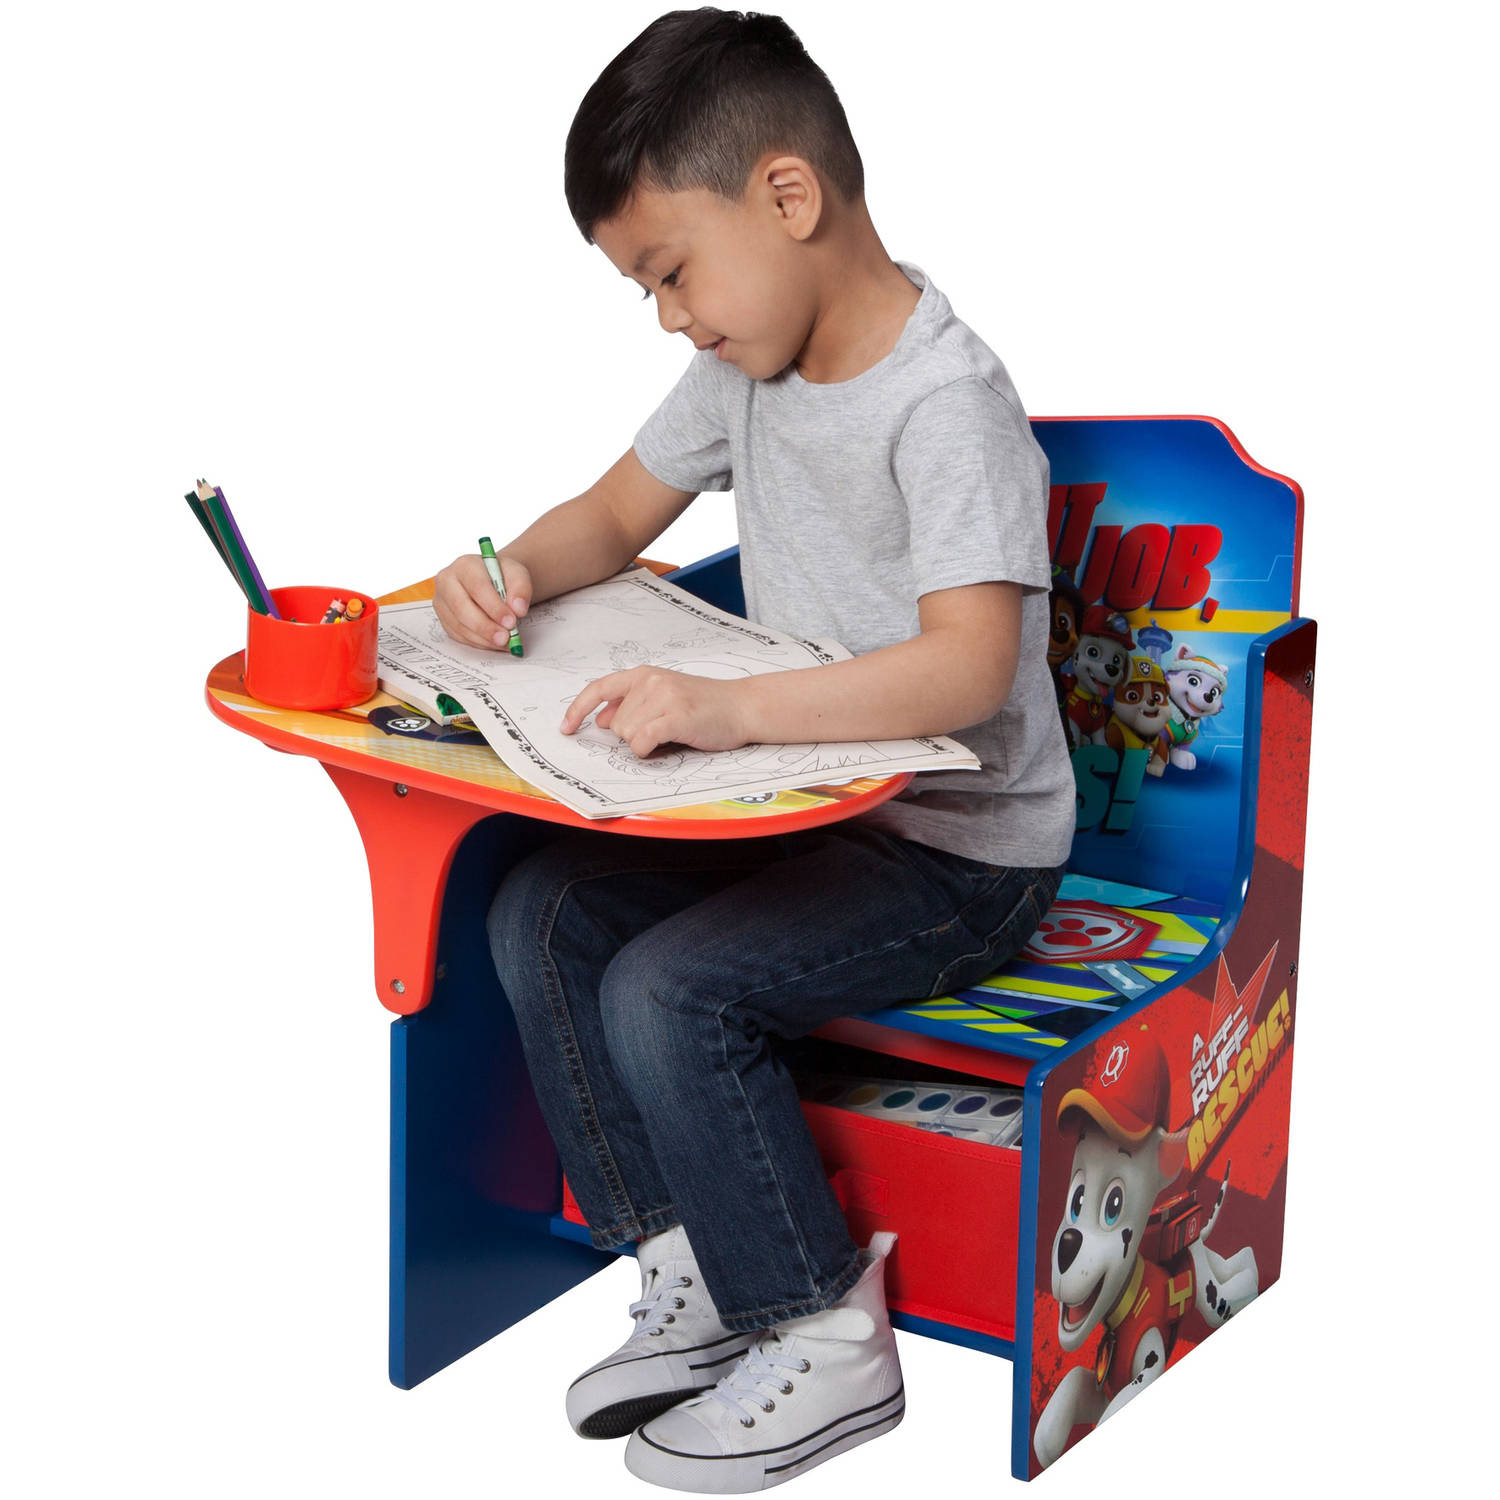 Image of: Nick Jr Paw Patrol Chair Desk With Storage Bin By Delta Children Walmart Com Walmart Com